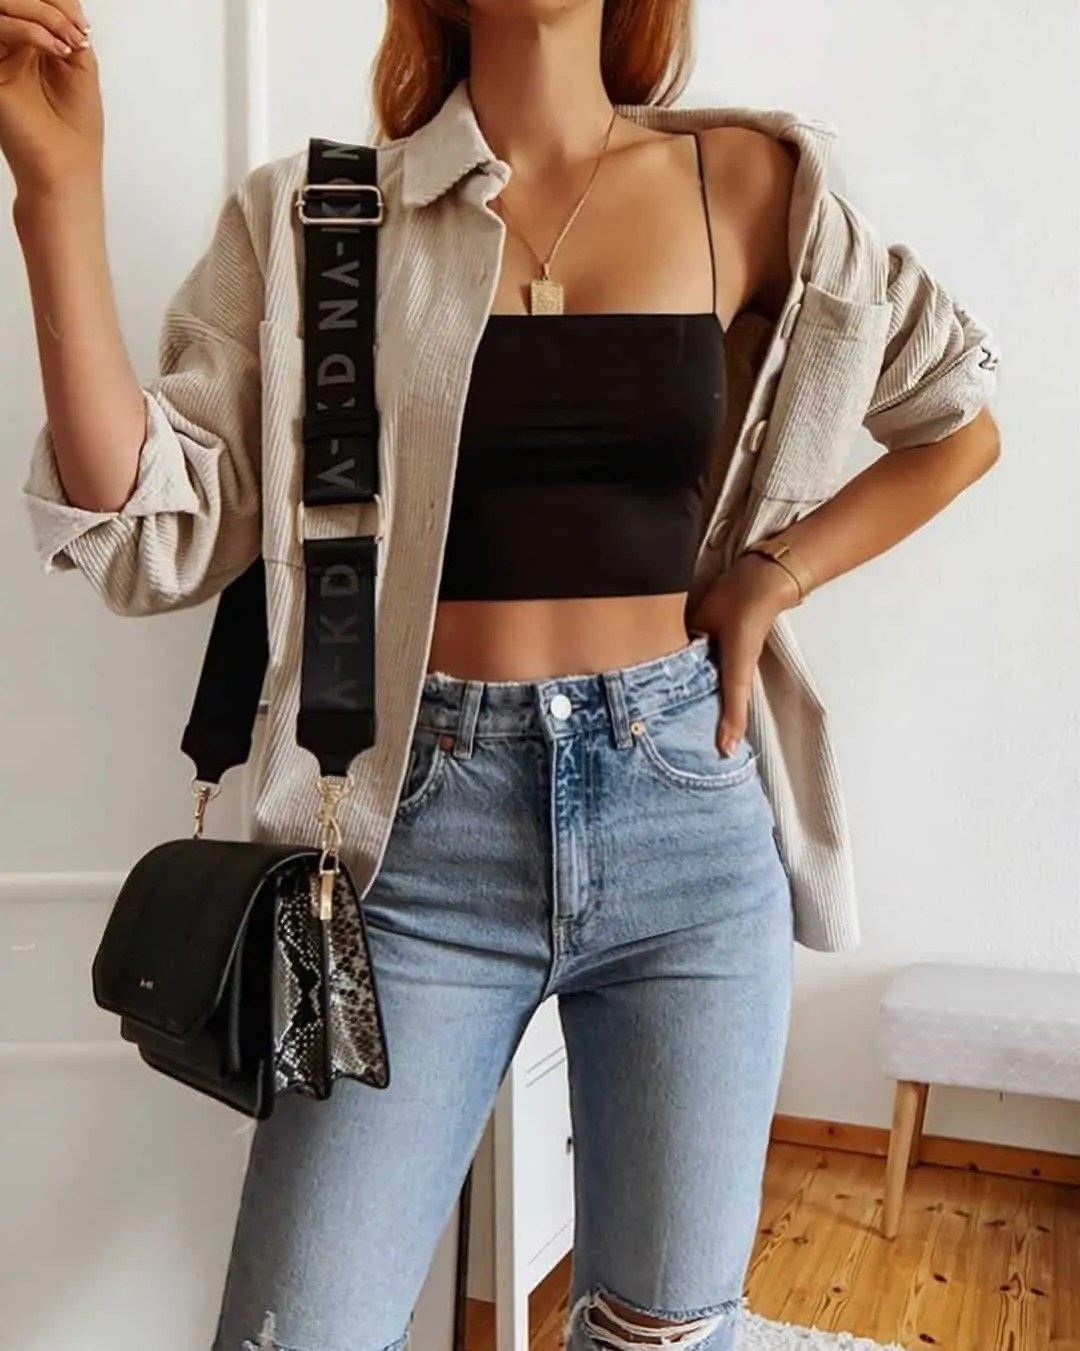 100+ fashion inspo outfits that you have to see no matter what your style is 11